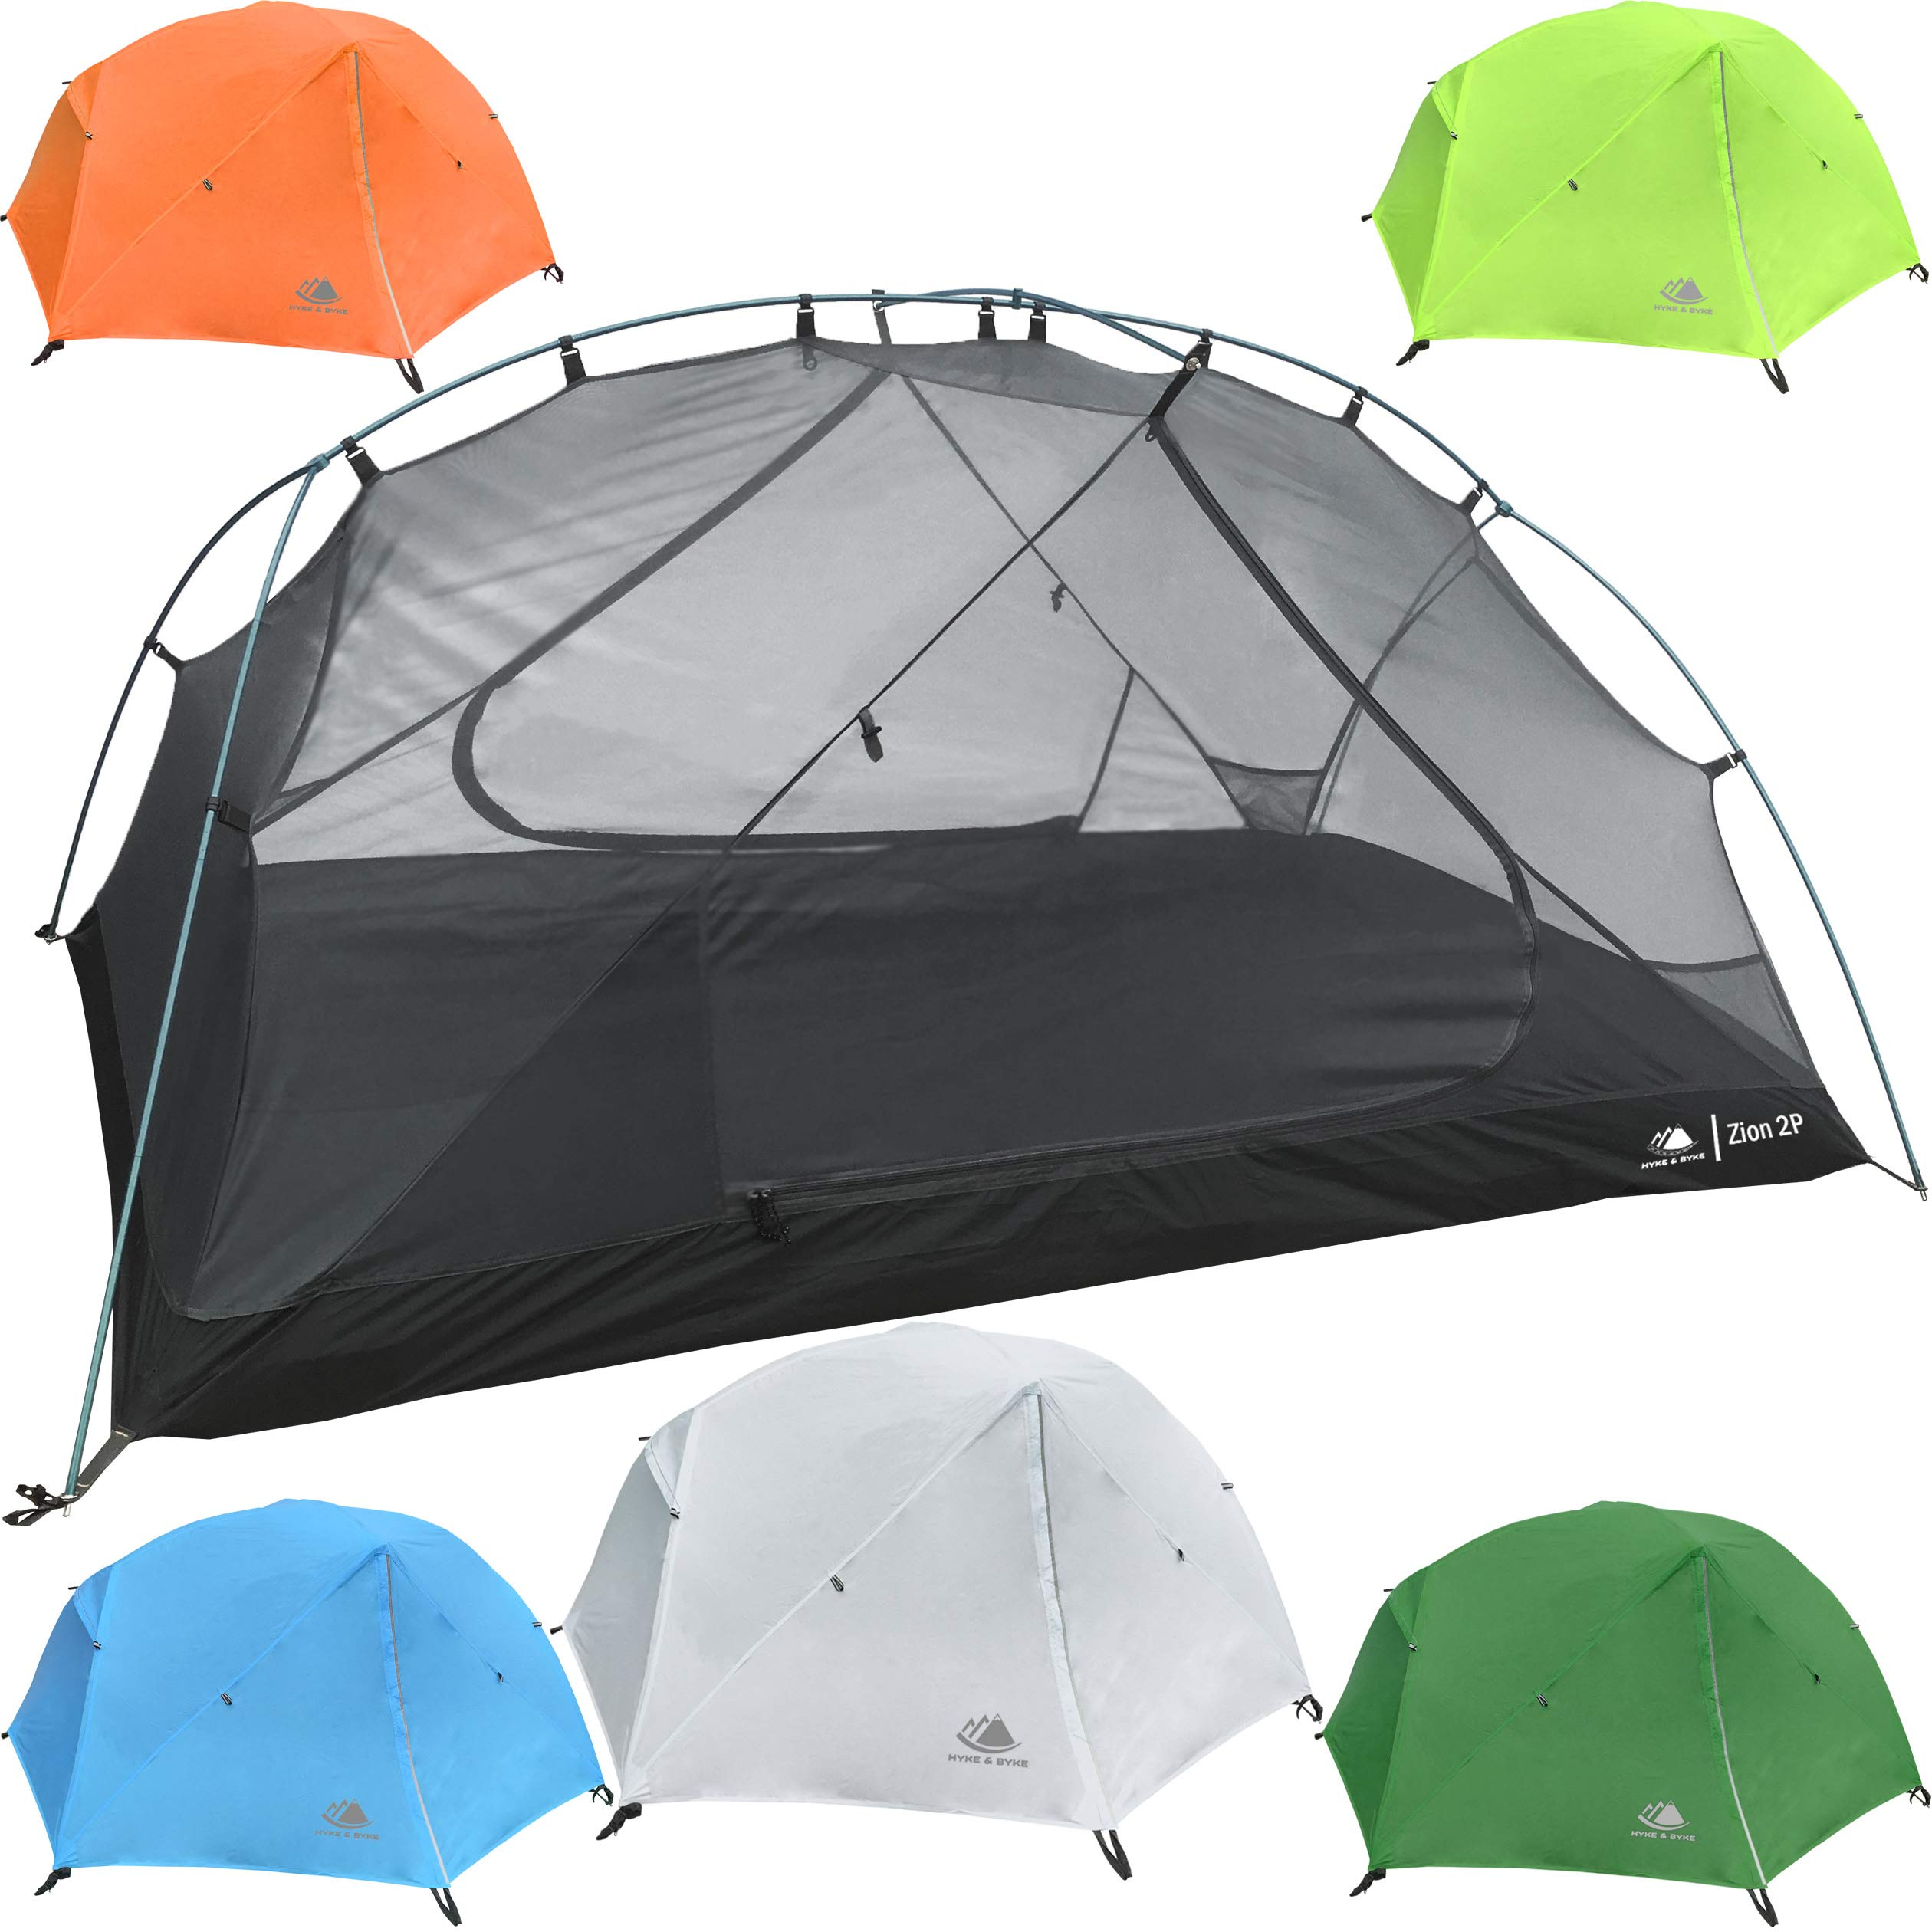 Hyke u0026 Byke Zion 1 and 2 Person Backpacking Tents with Footprint - Lightweight Two Door Ultralight Dome C&ing Tent  sc 1 st  Amazon.com & Best ultralight tents for backpacking | Amazon.com